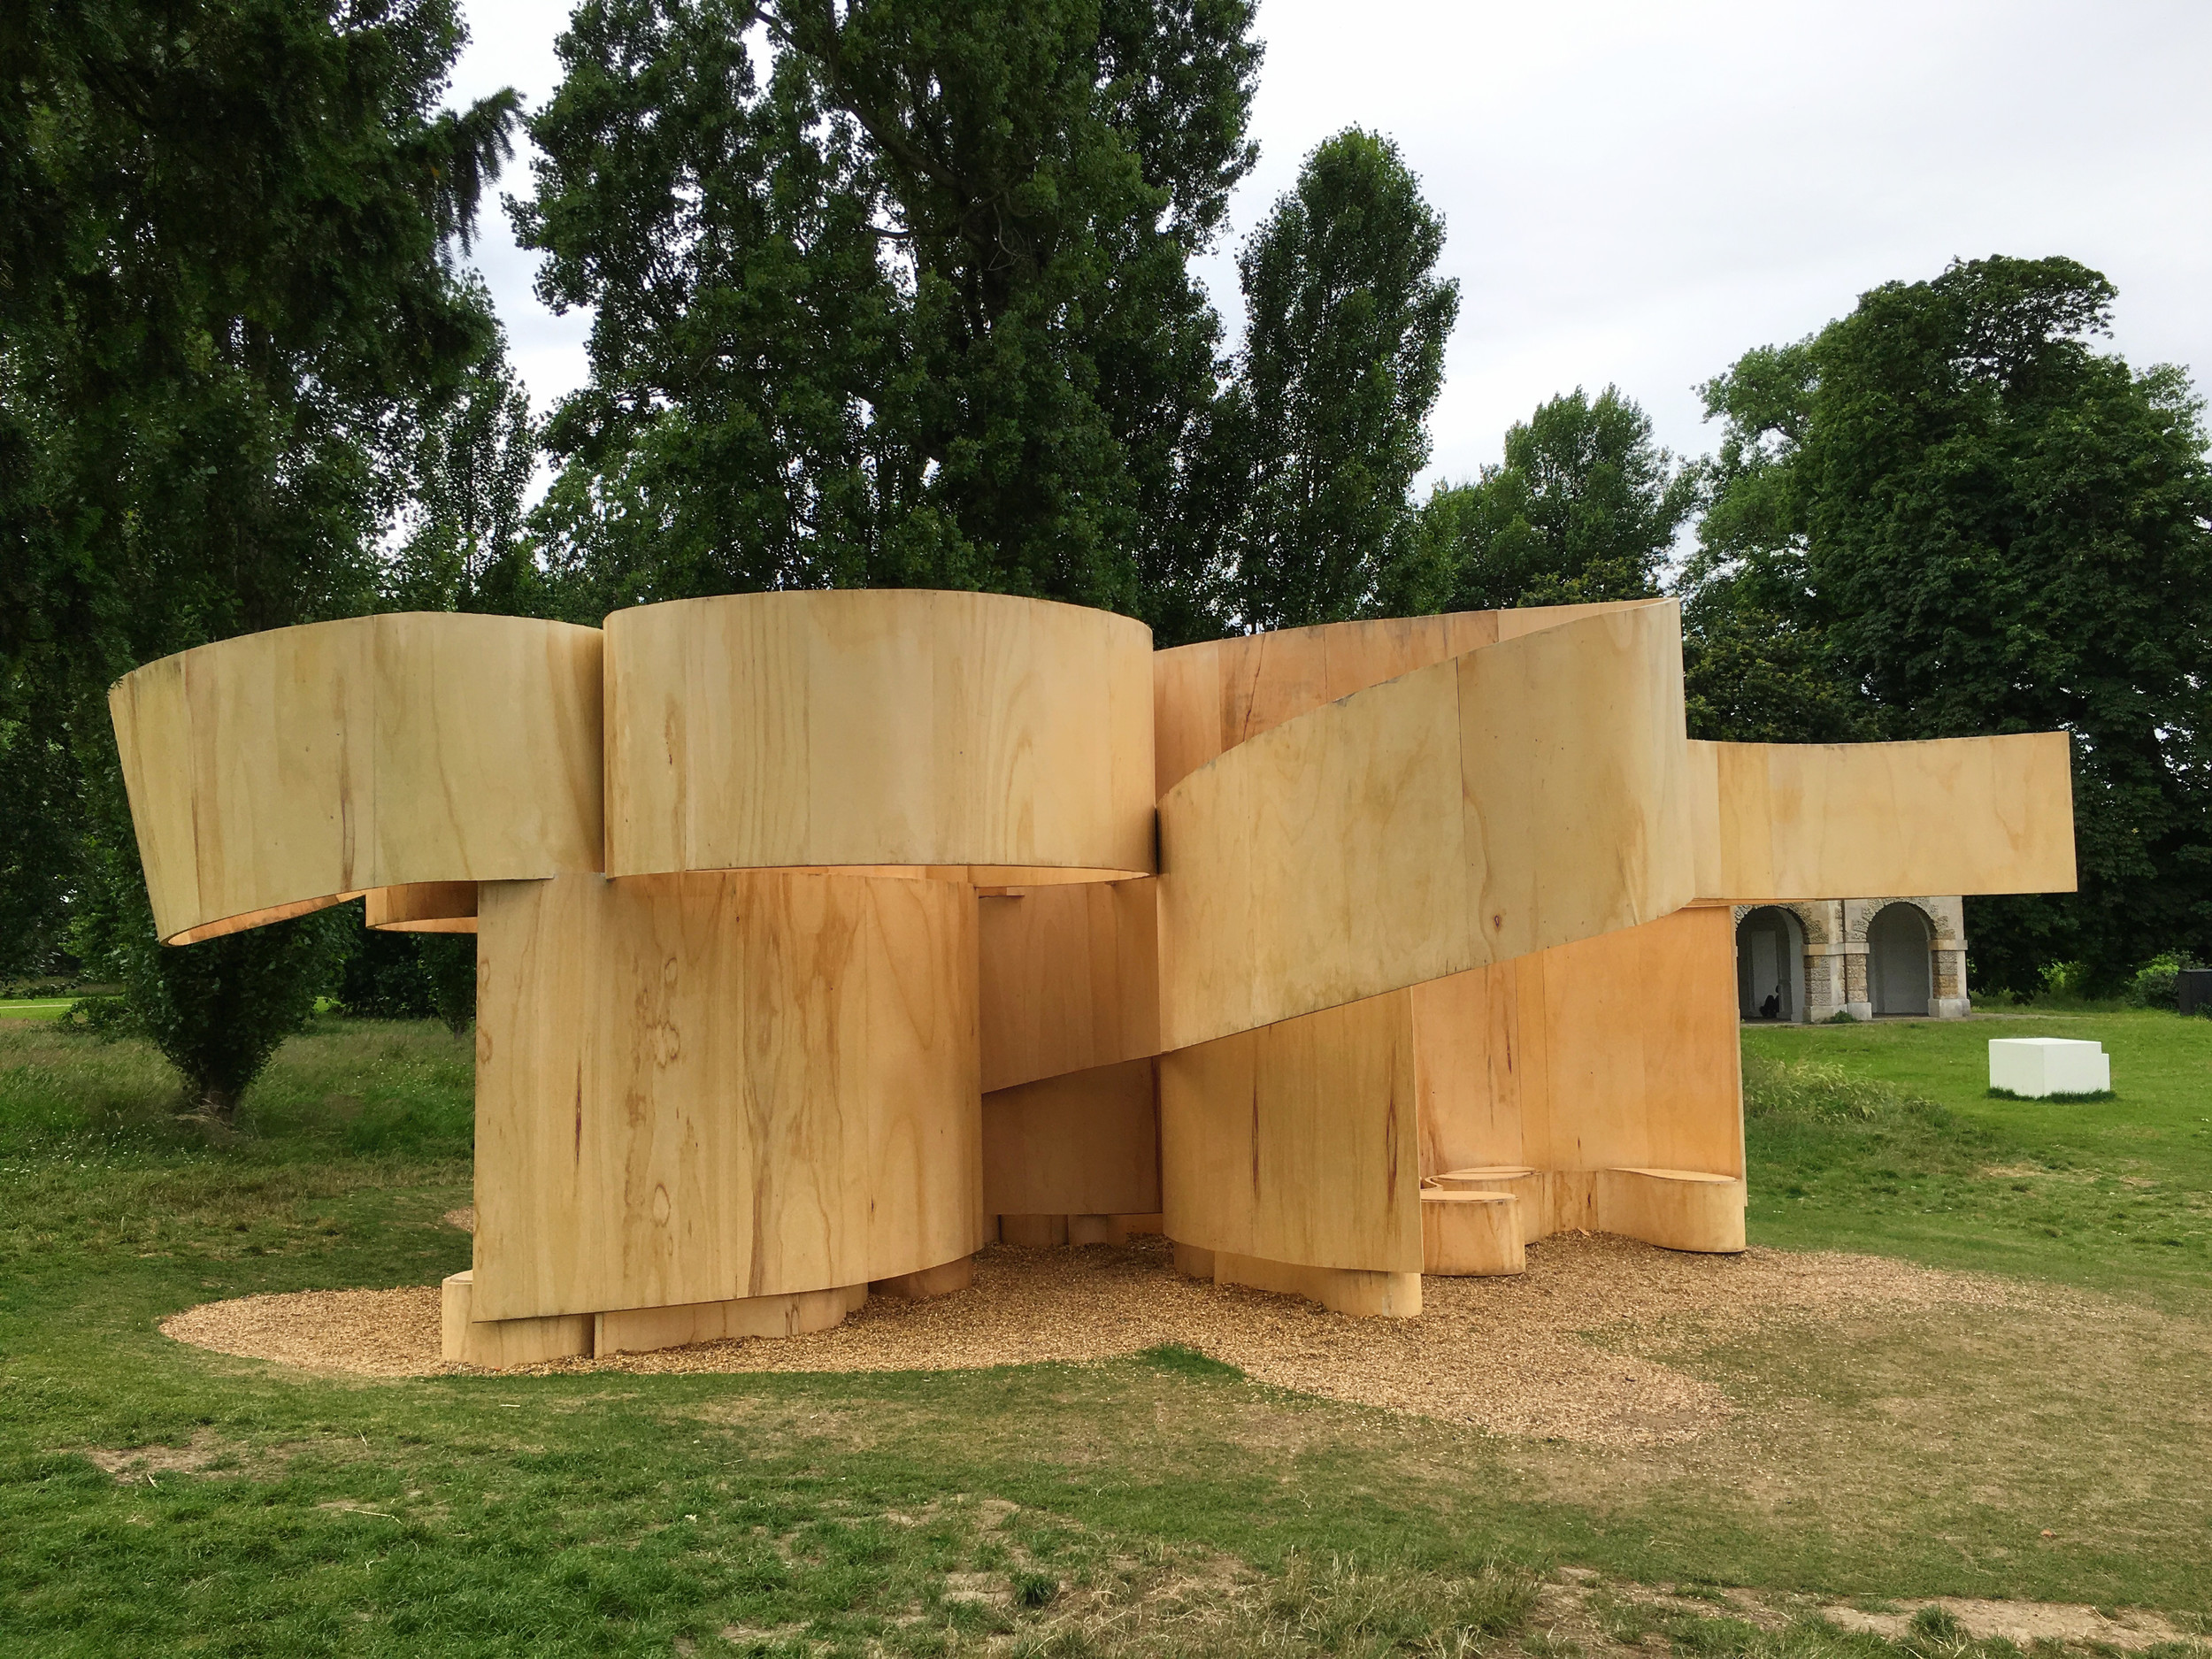 Serpentine Summer House 2016 by Barkow Leibinger  (own photo)